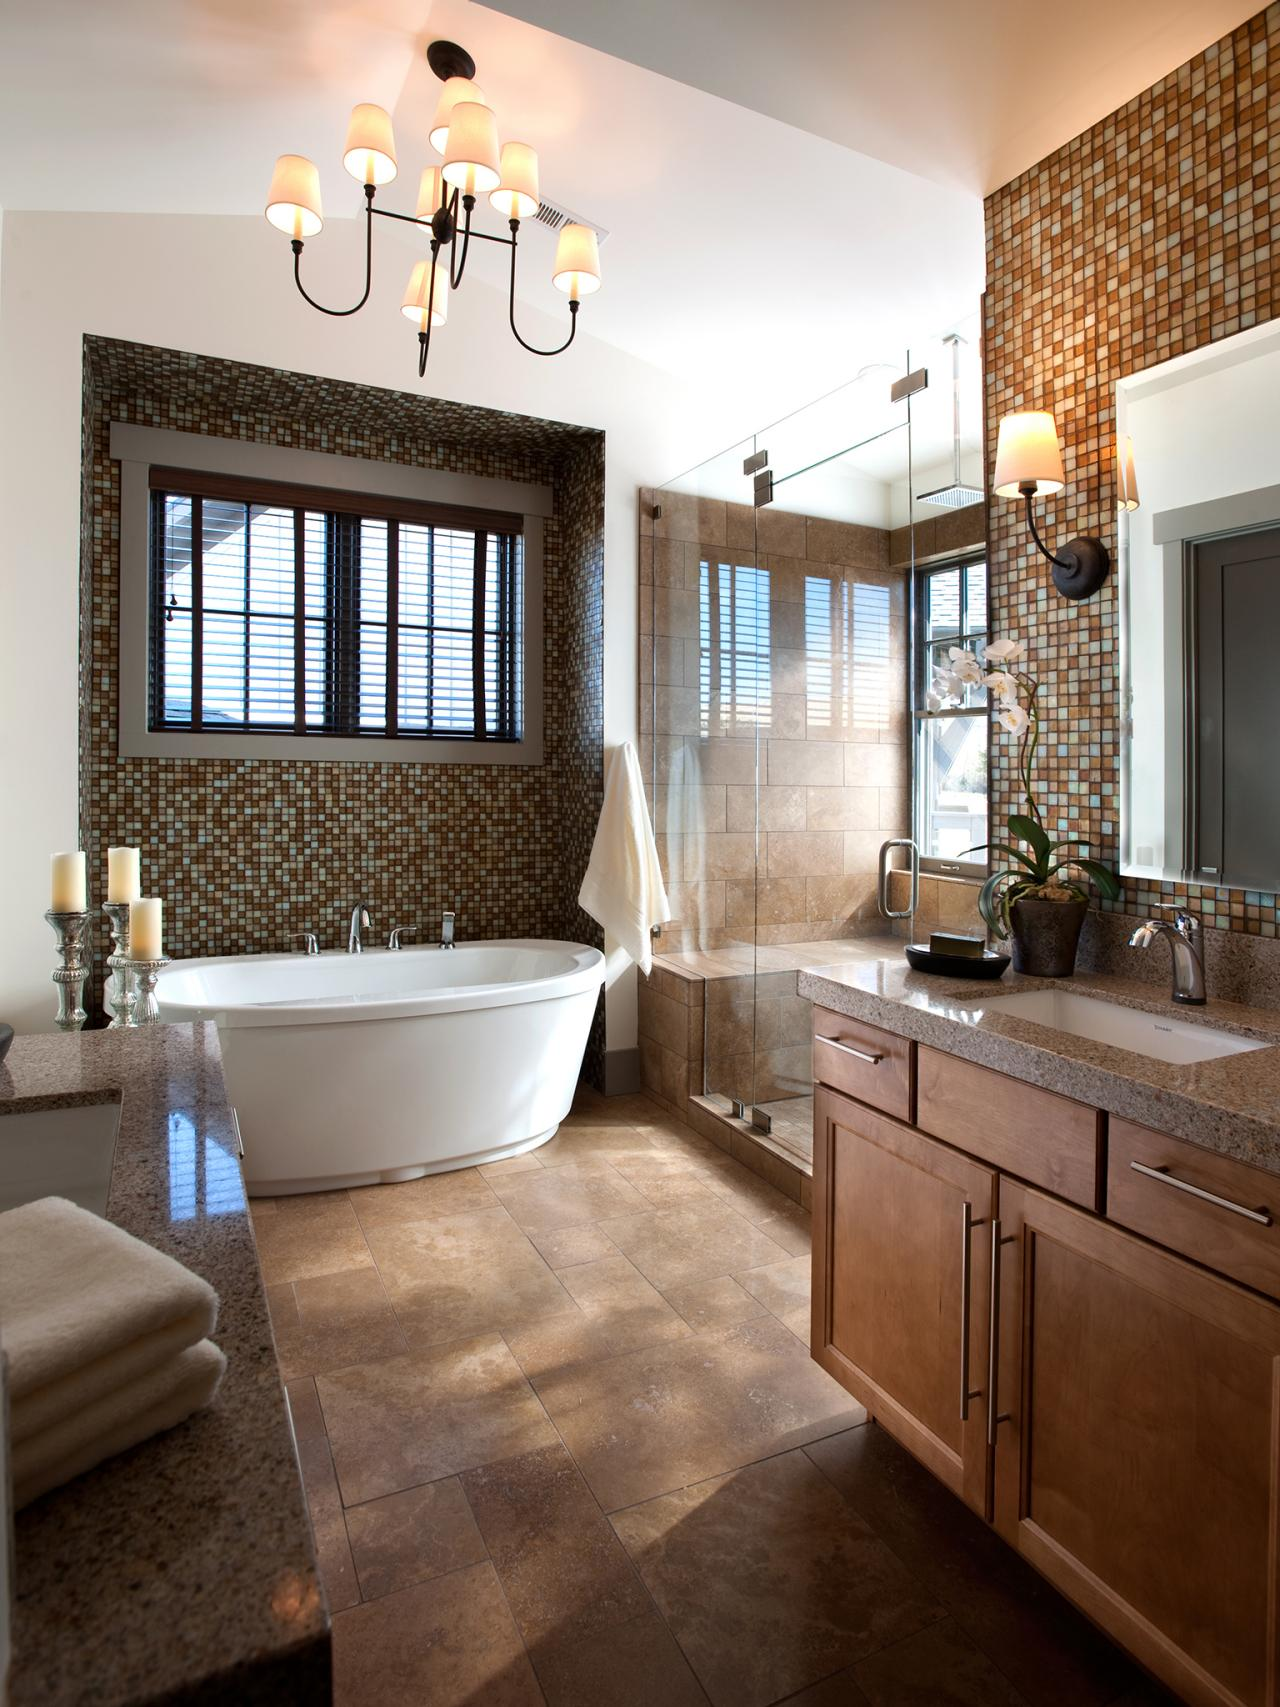 Pictures of beautiful luxury bathtubs ideas for Bathroom ideas luxury